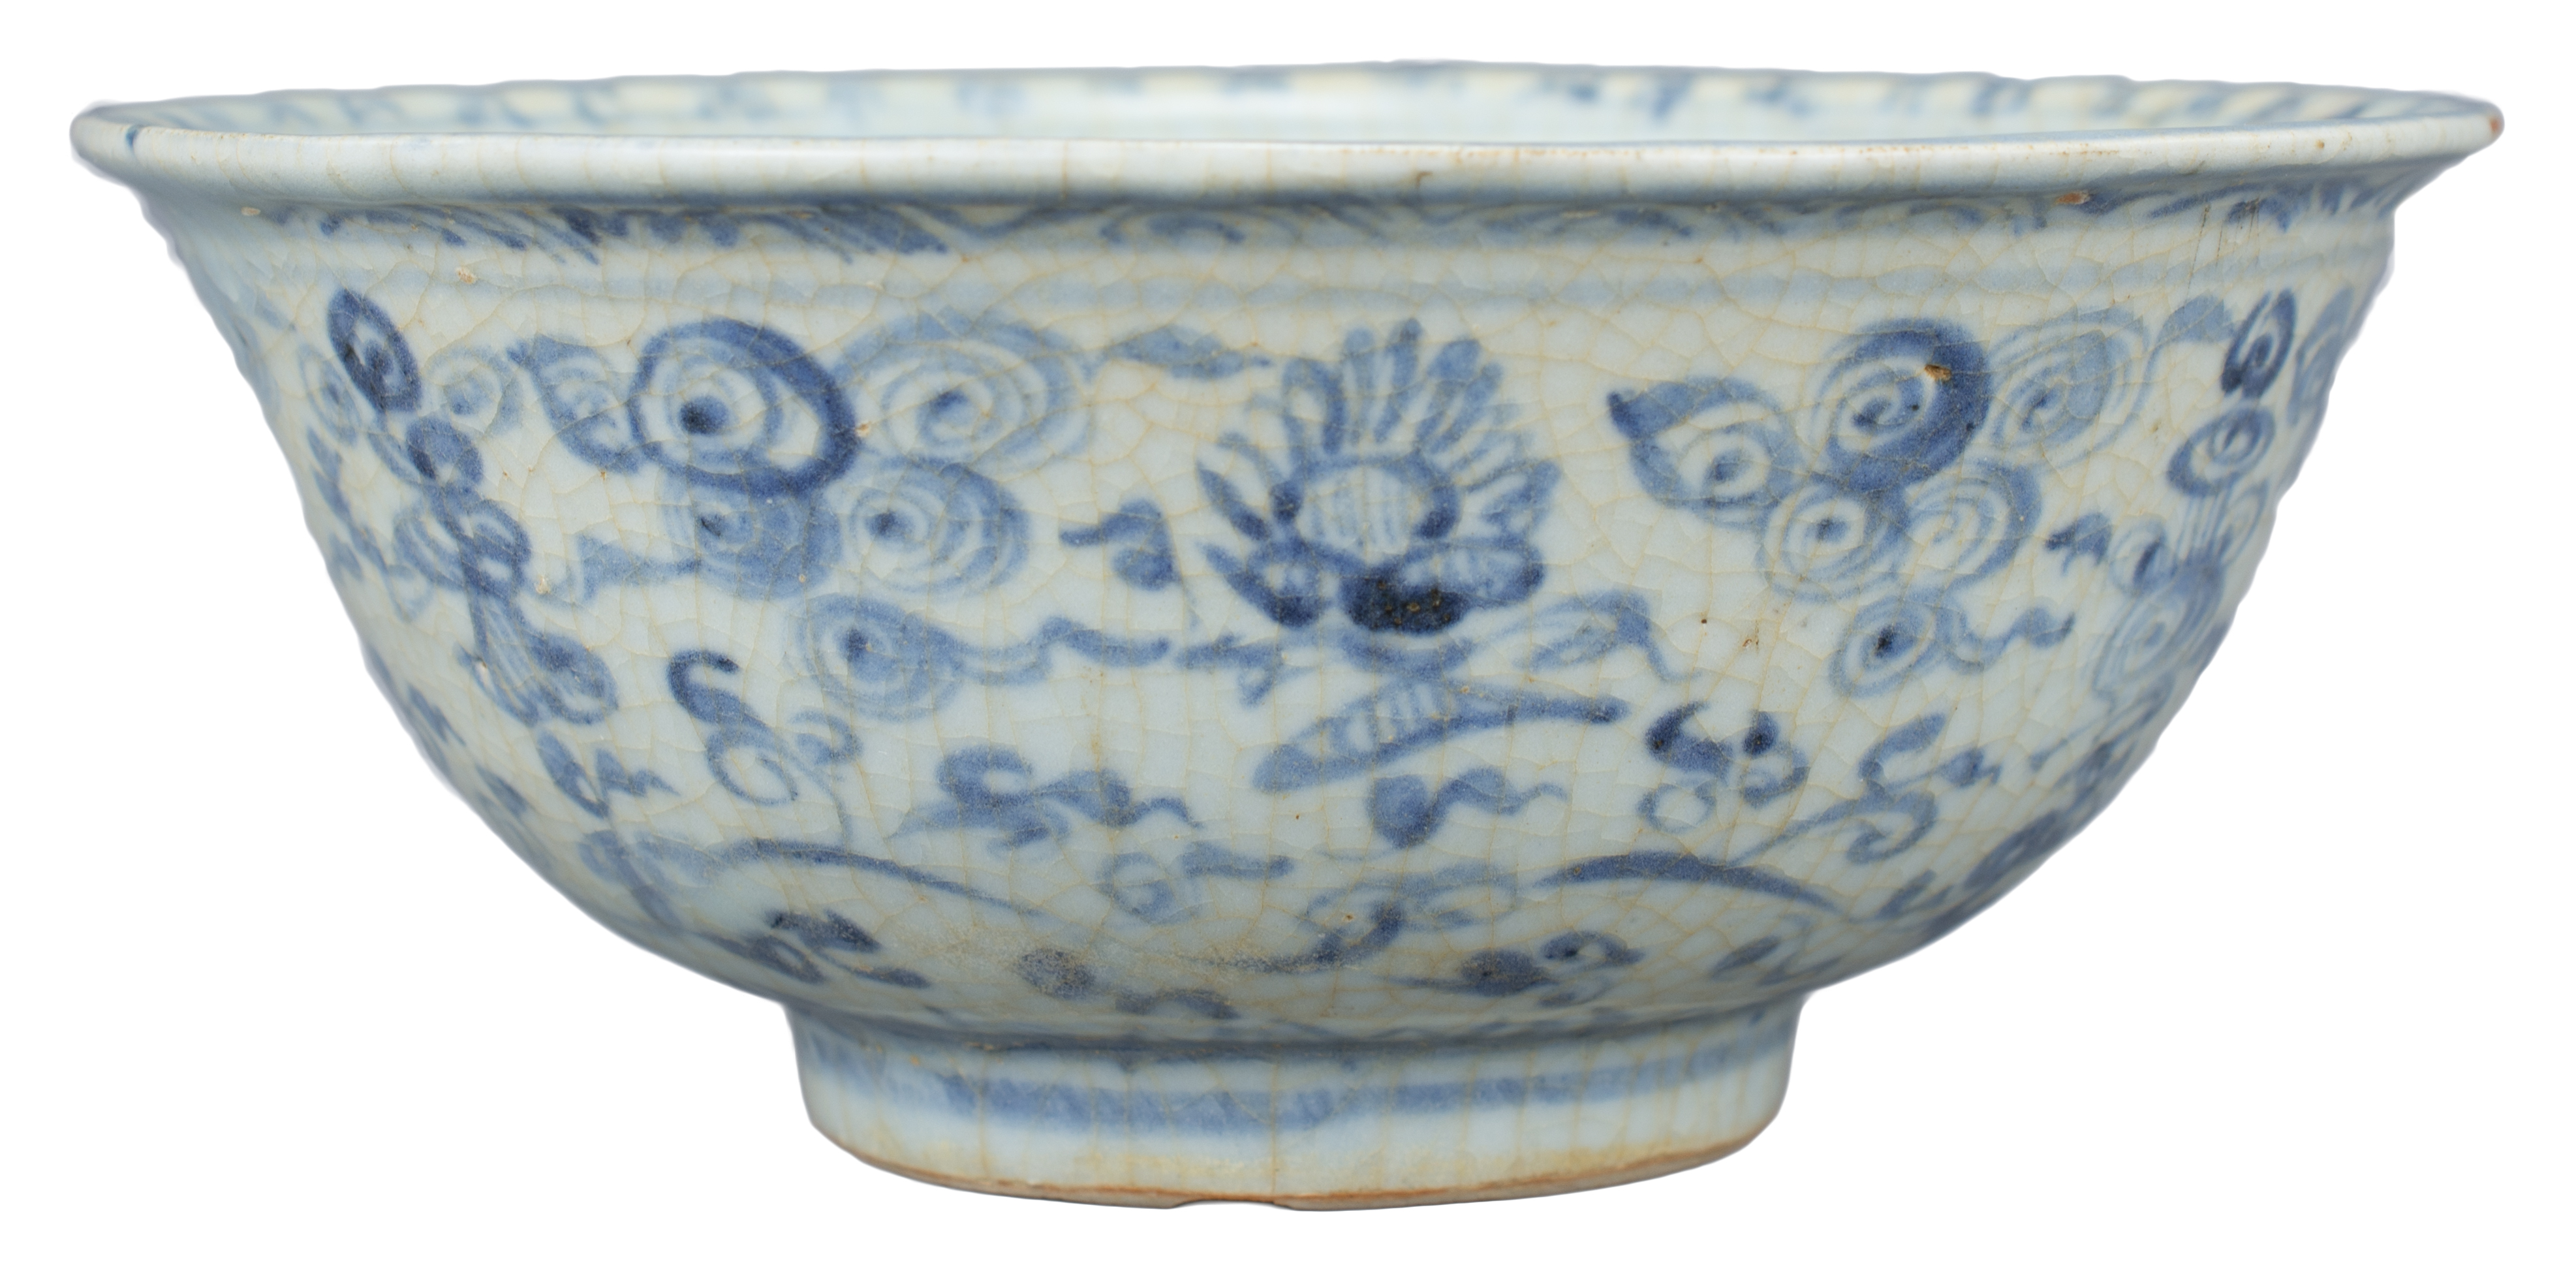 Lot 7 - A Chinese Ming Dynasty Blue & White Porcelain Bowl – Hongzhi reign